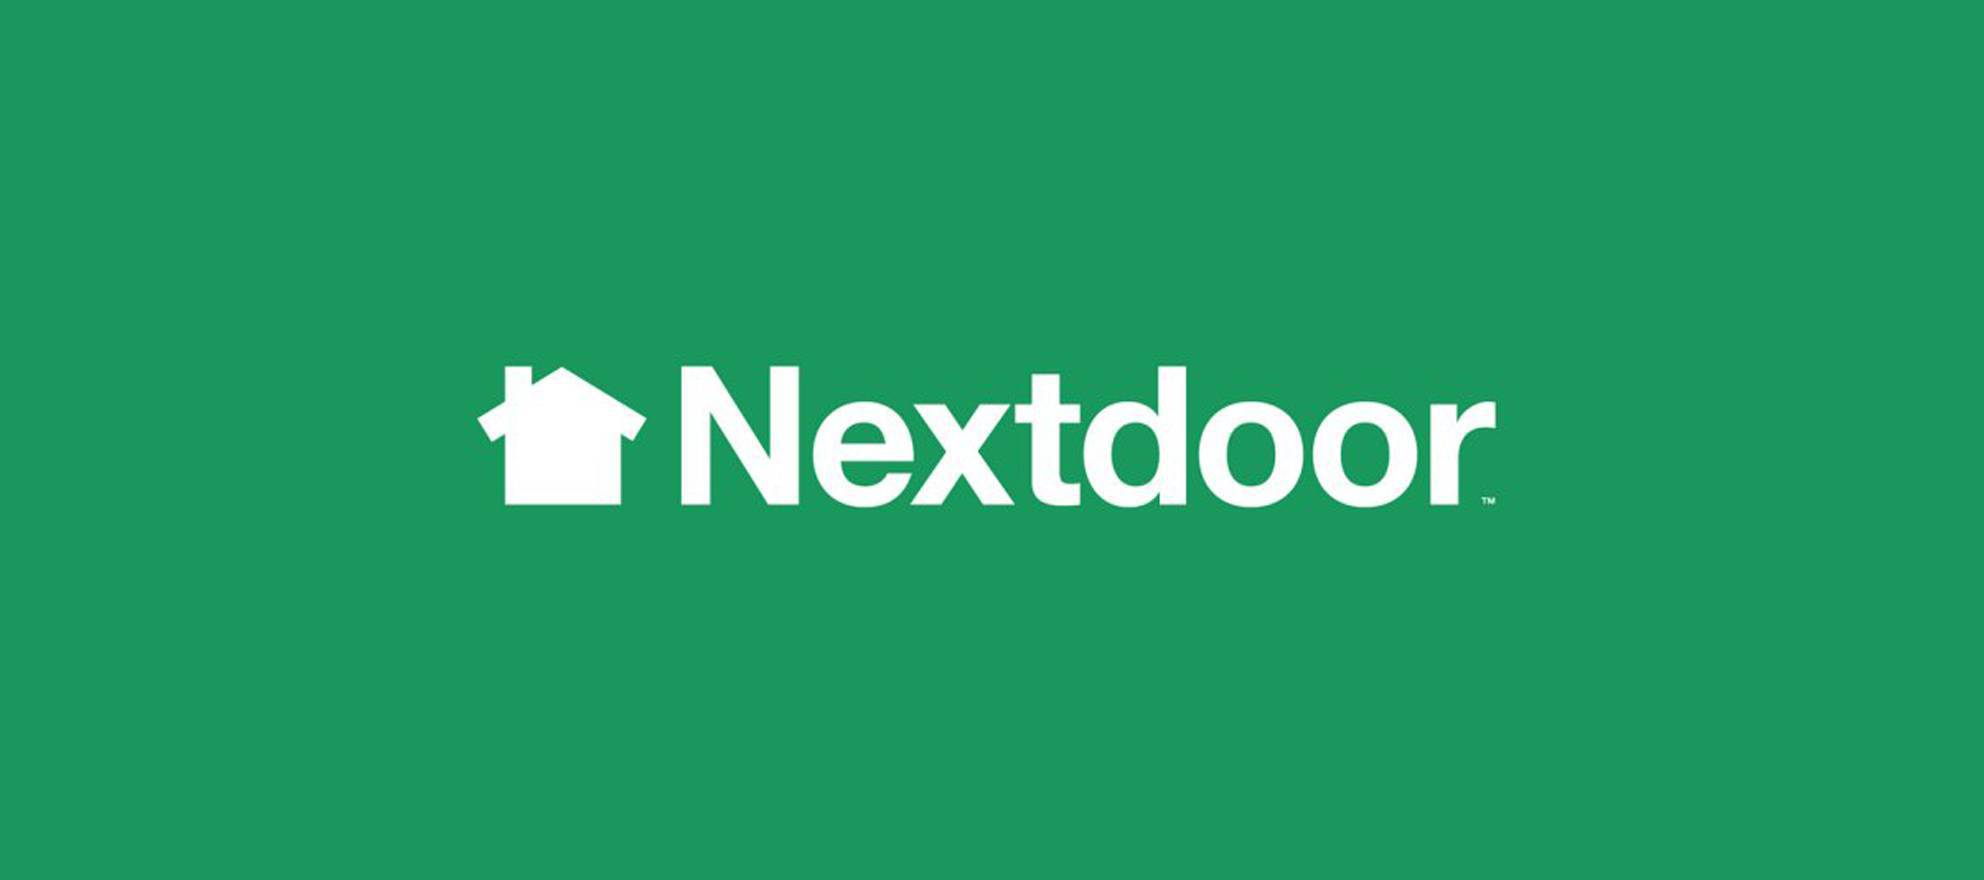 Keller Williams partners with Nextdoor for data insights